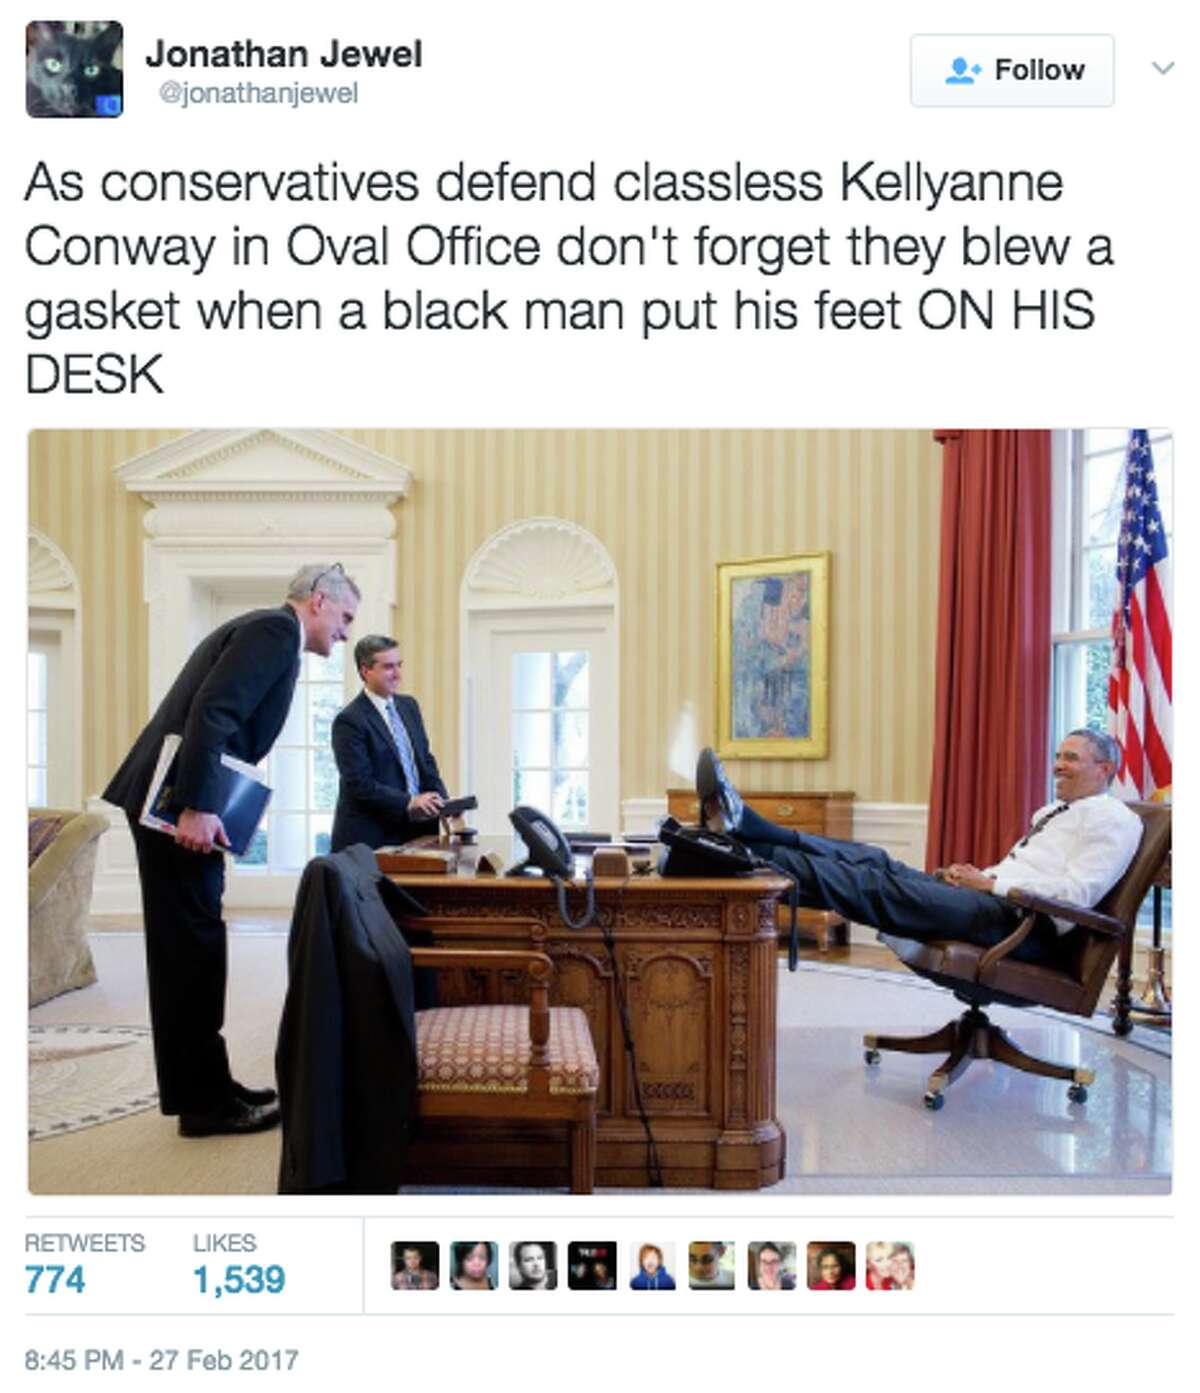 A photo of White House Adviser Kellyanne Conway sitting in a casual position on an Oval Office couch was quickly turned into a meme.